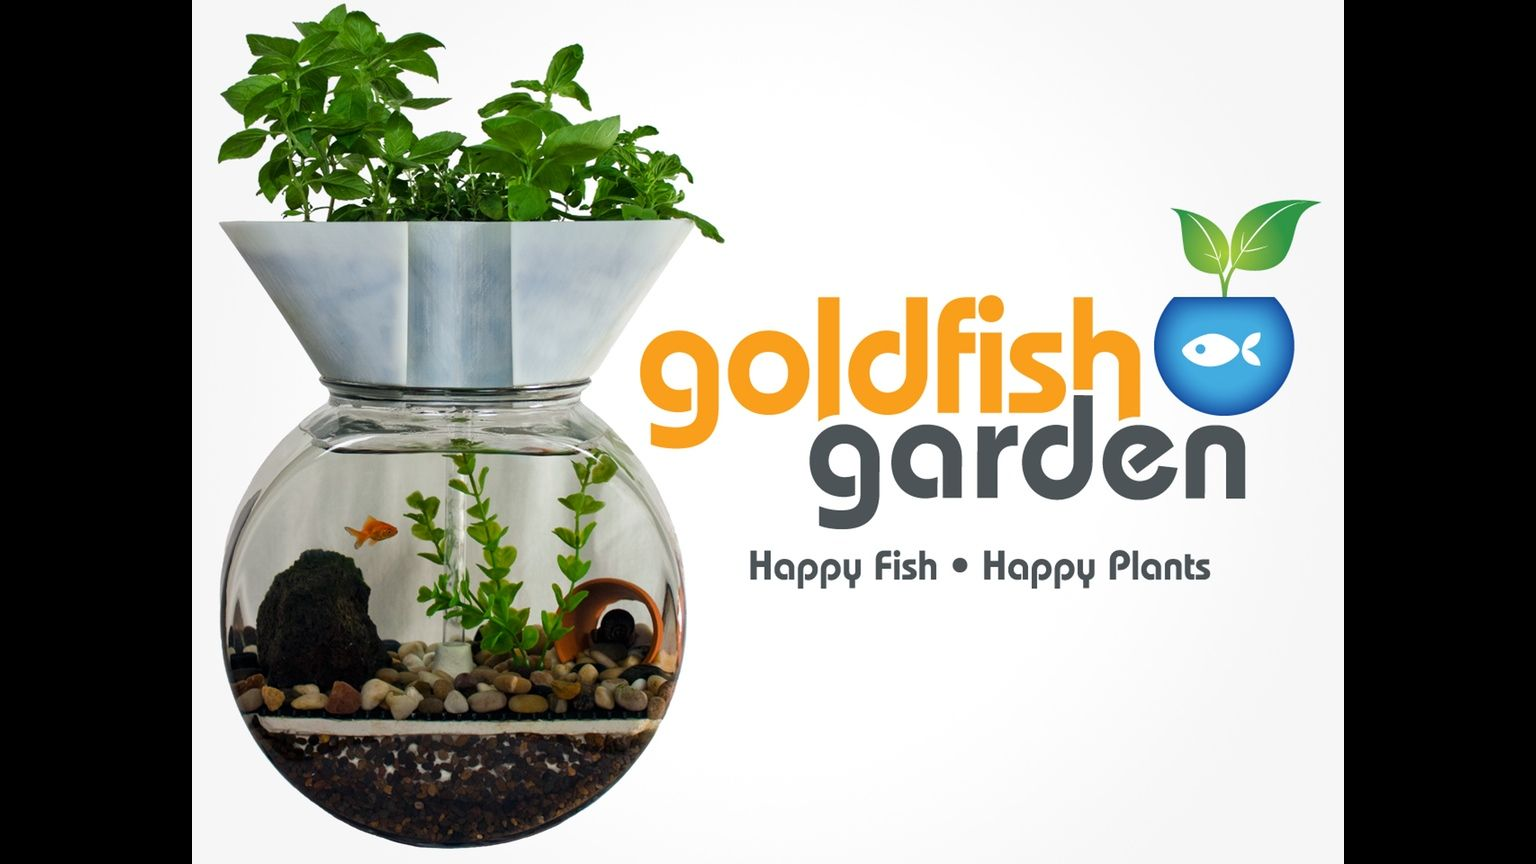 The goldfish garden is a selfcleaning aquaponic aquarium that uses